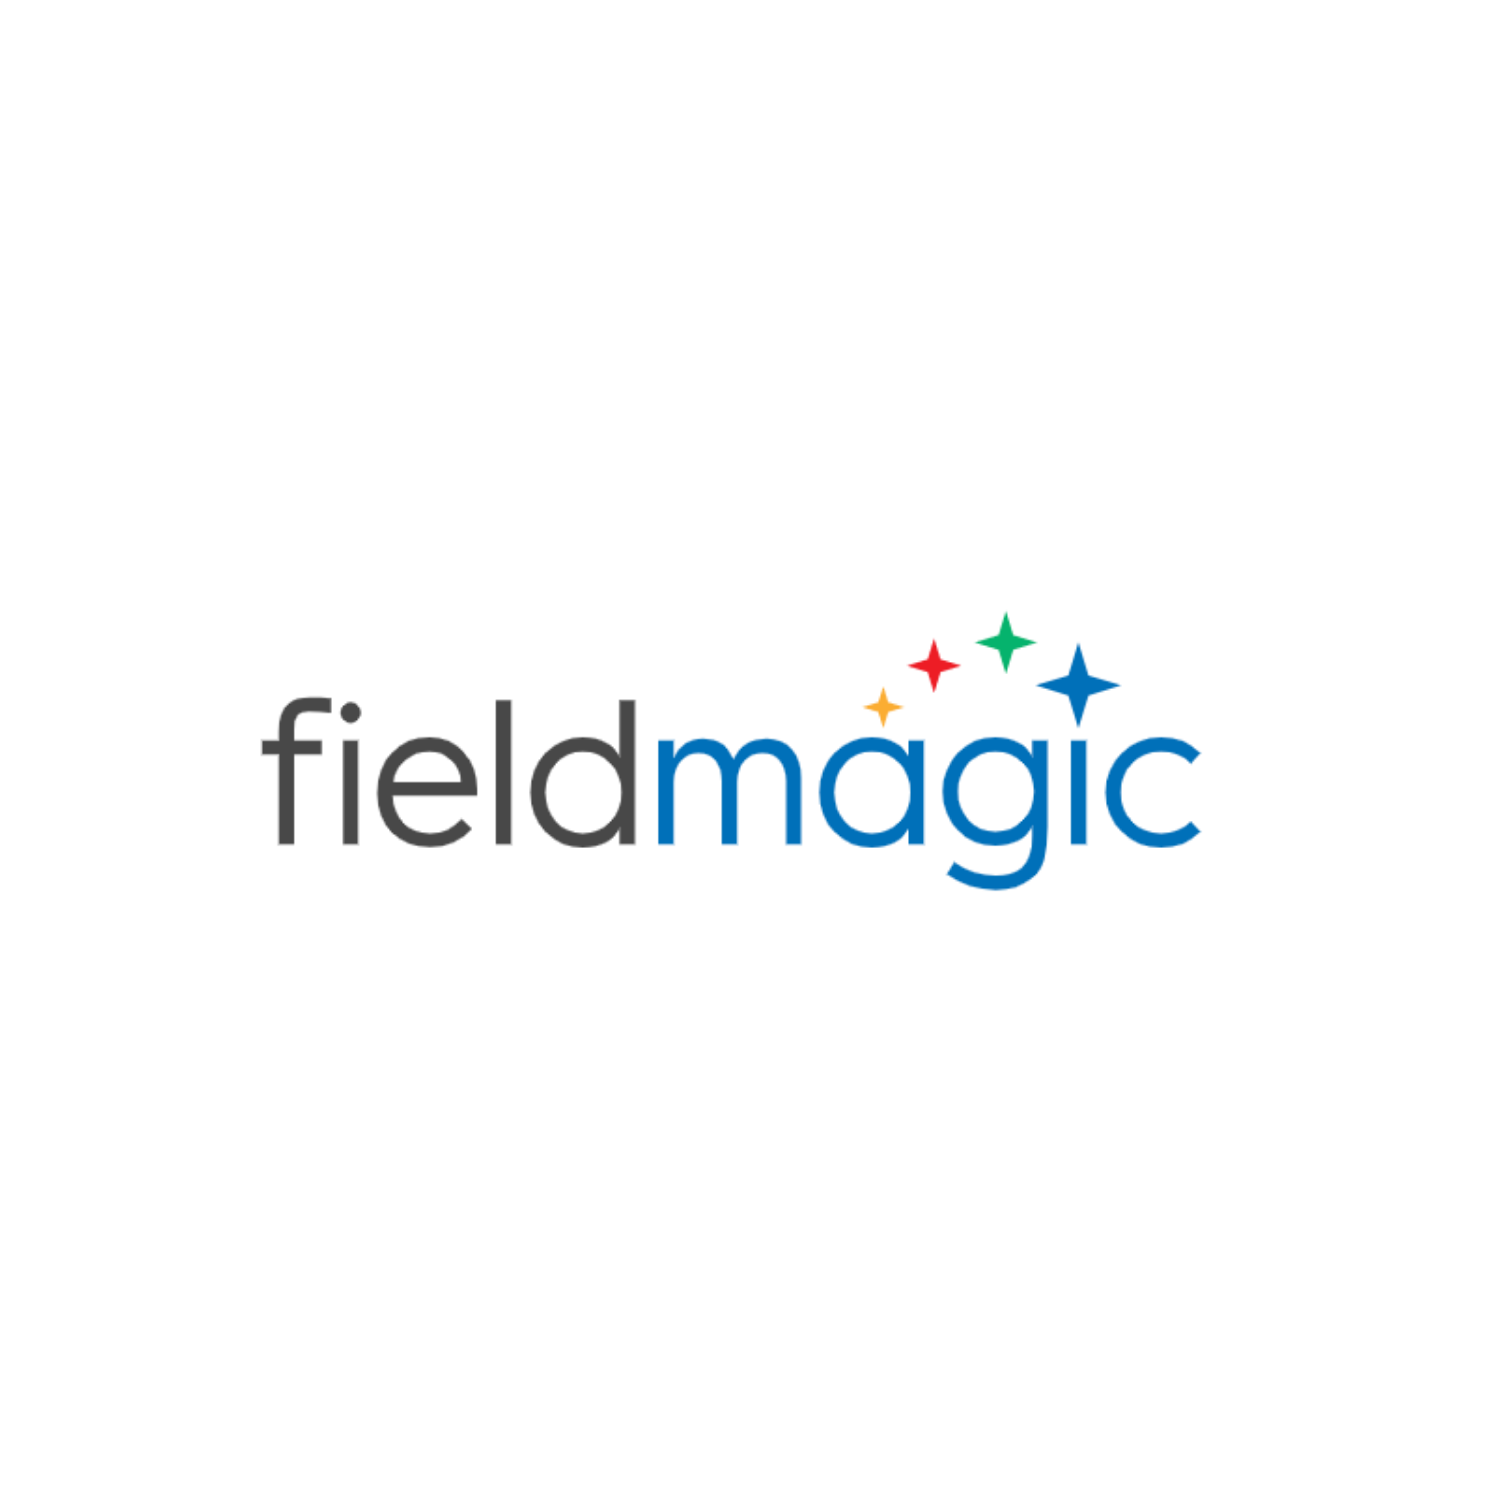 Fieldmagic